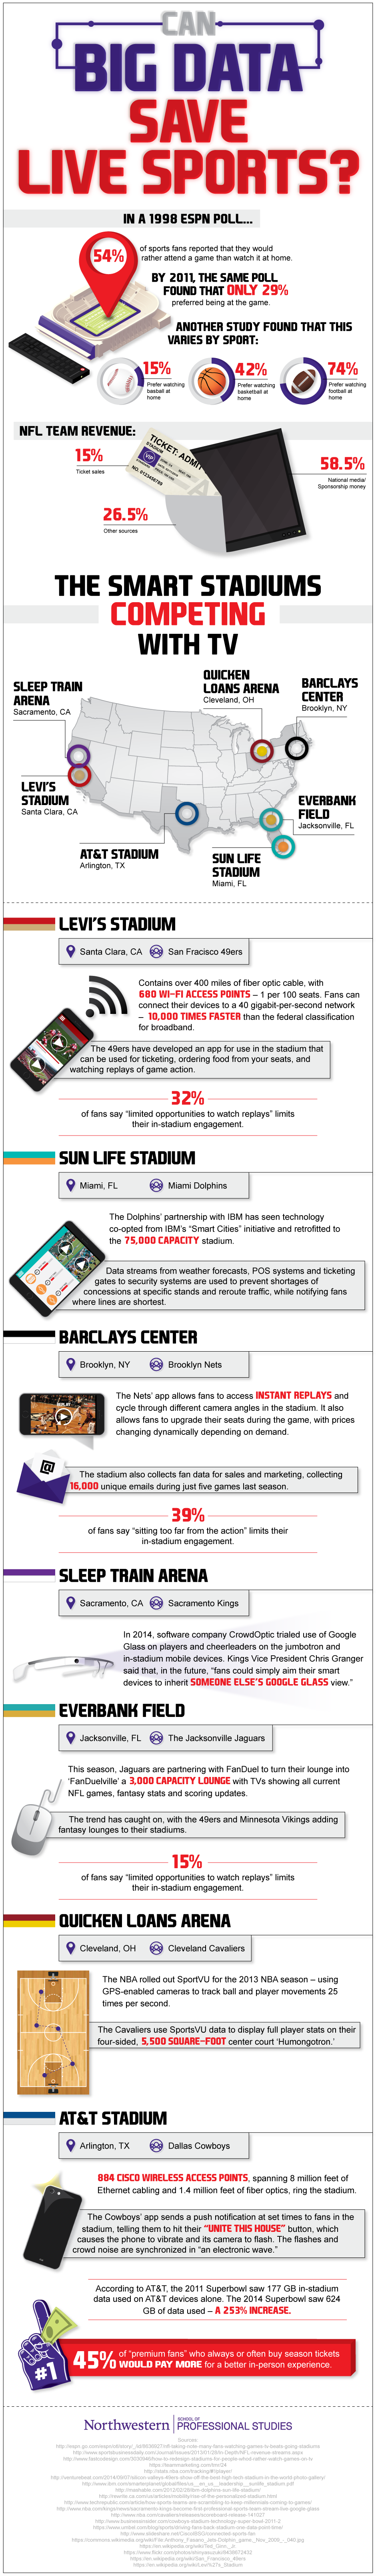 Infographic How Big Data Is Helping Draw Sports Fans To The Stadiums Big Data Big Data Analytics Big Data Technologies